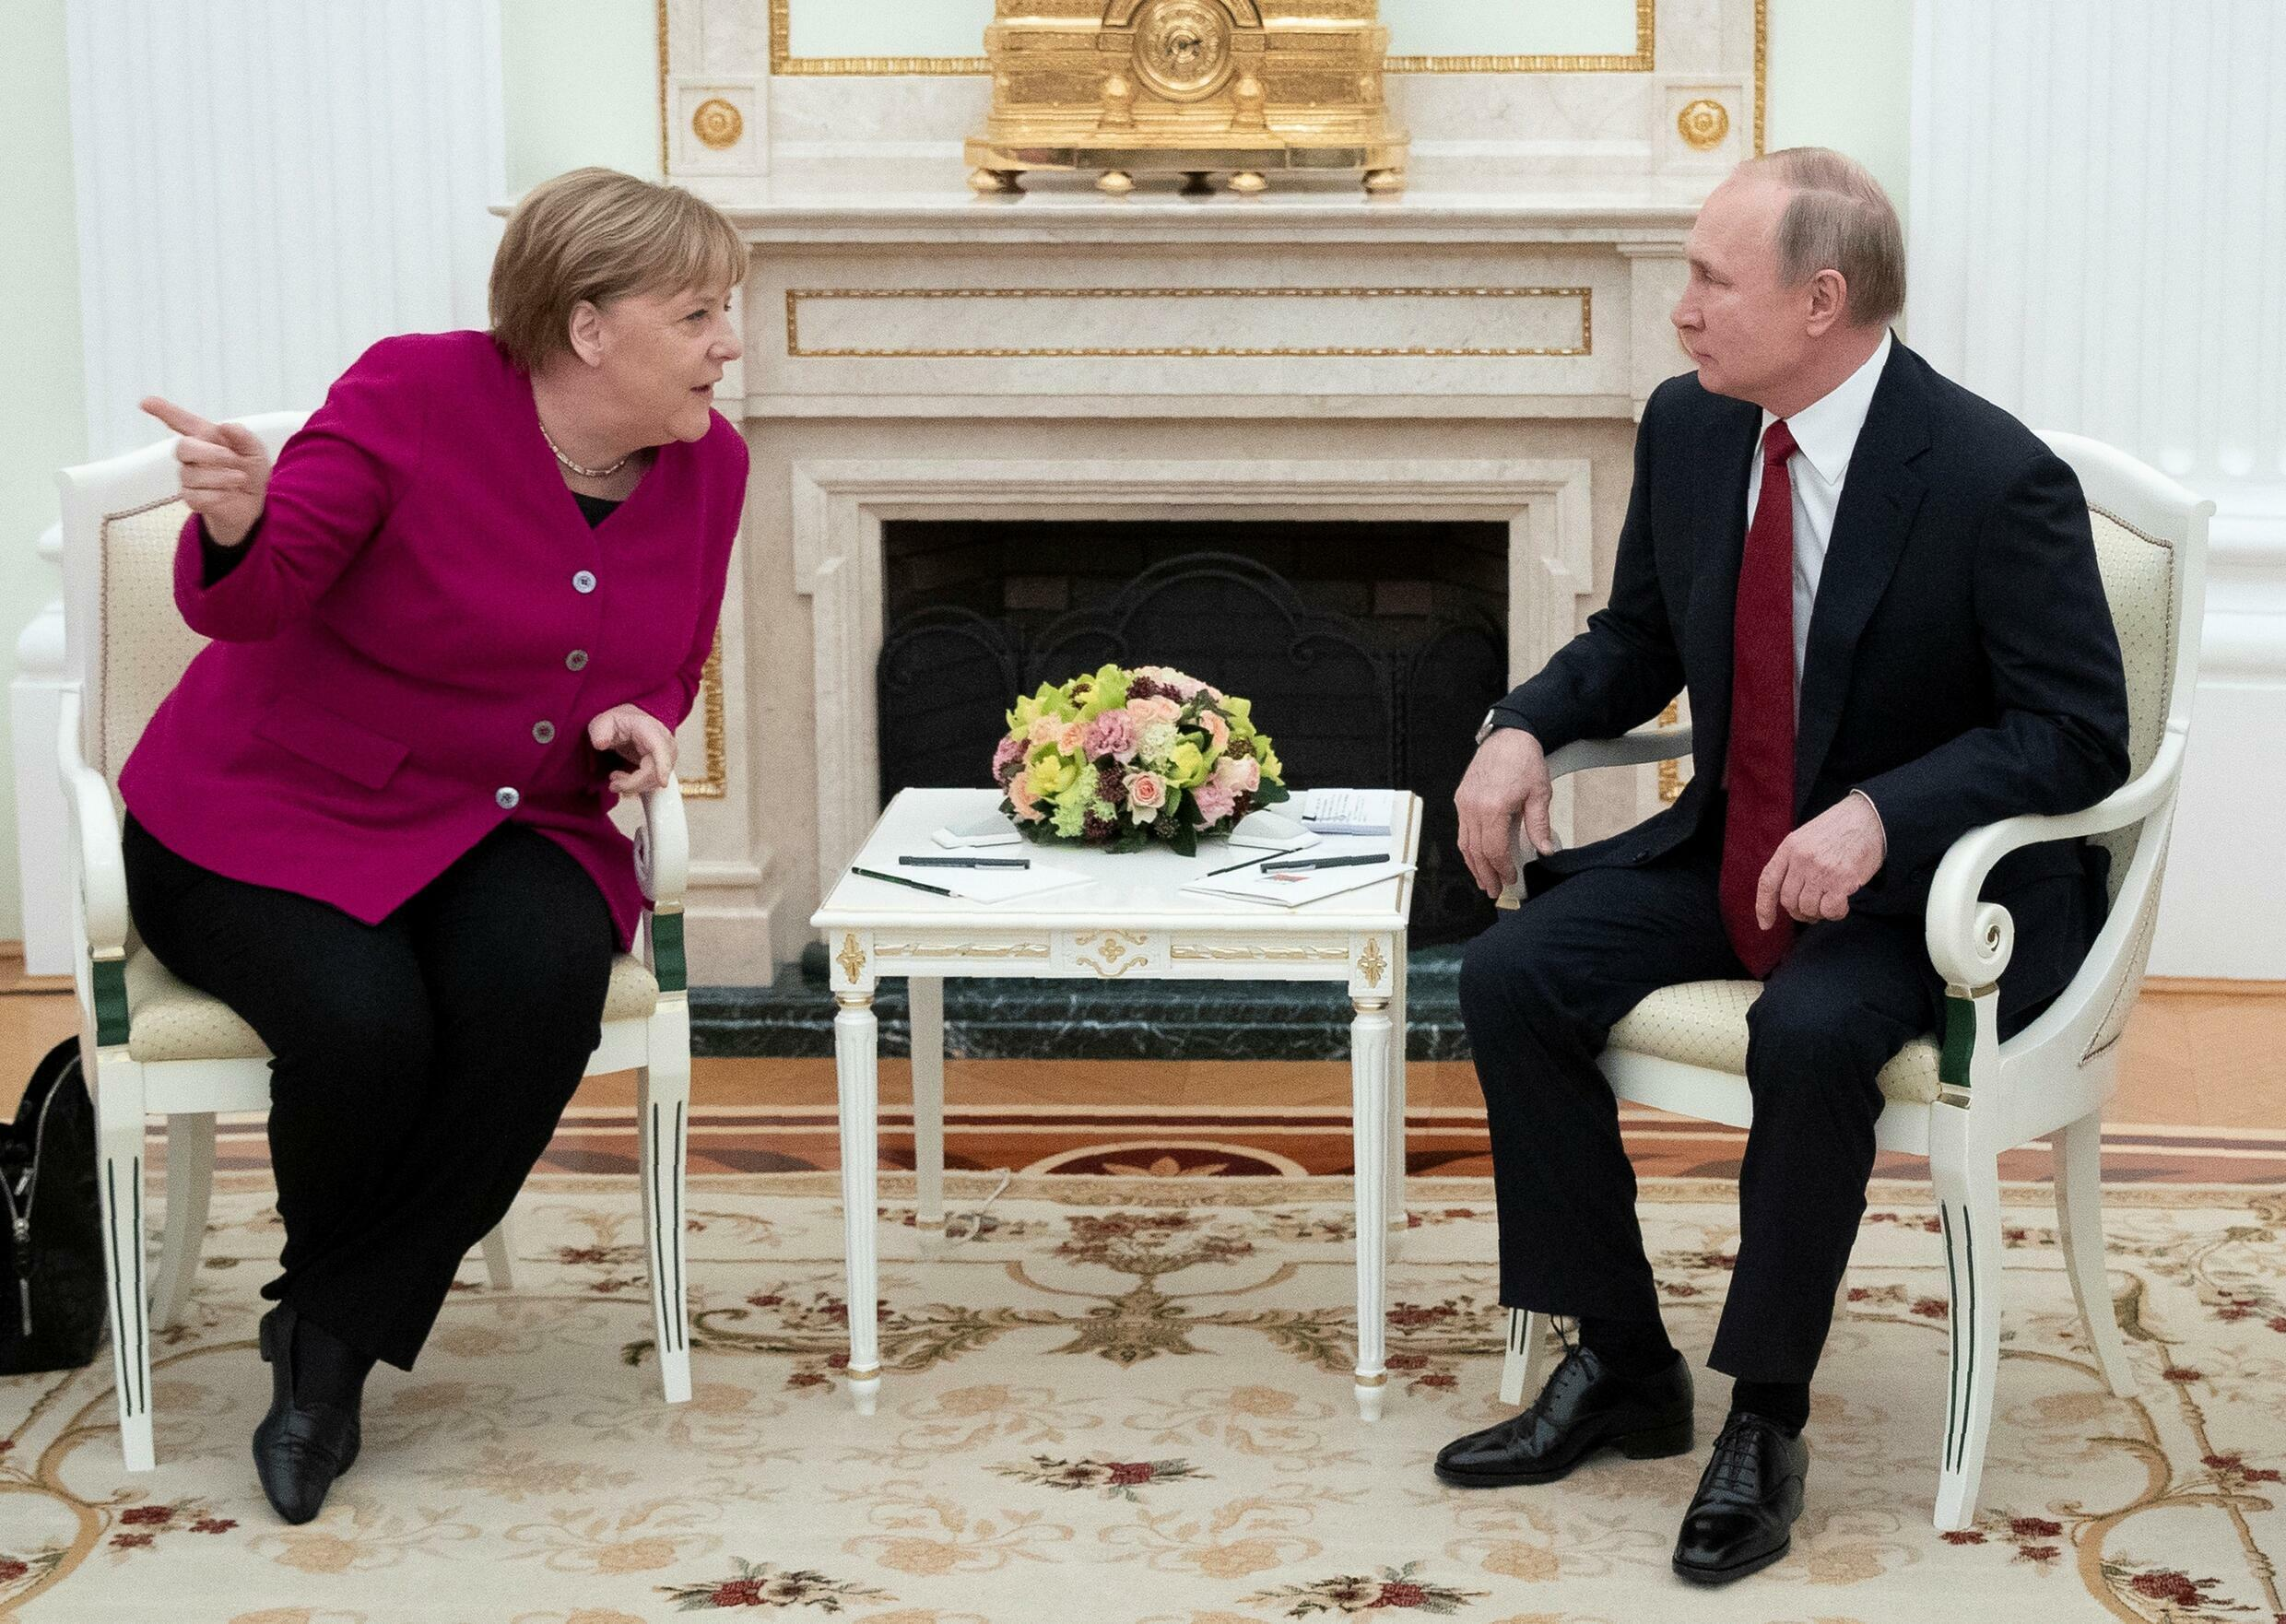 Merkel's tactics in dismissing the antics of macho men have proven so effective that she has cemented her reputation as the woman who even Putin cannot intimidate